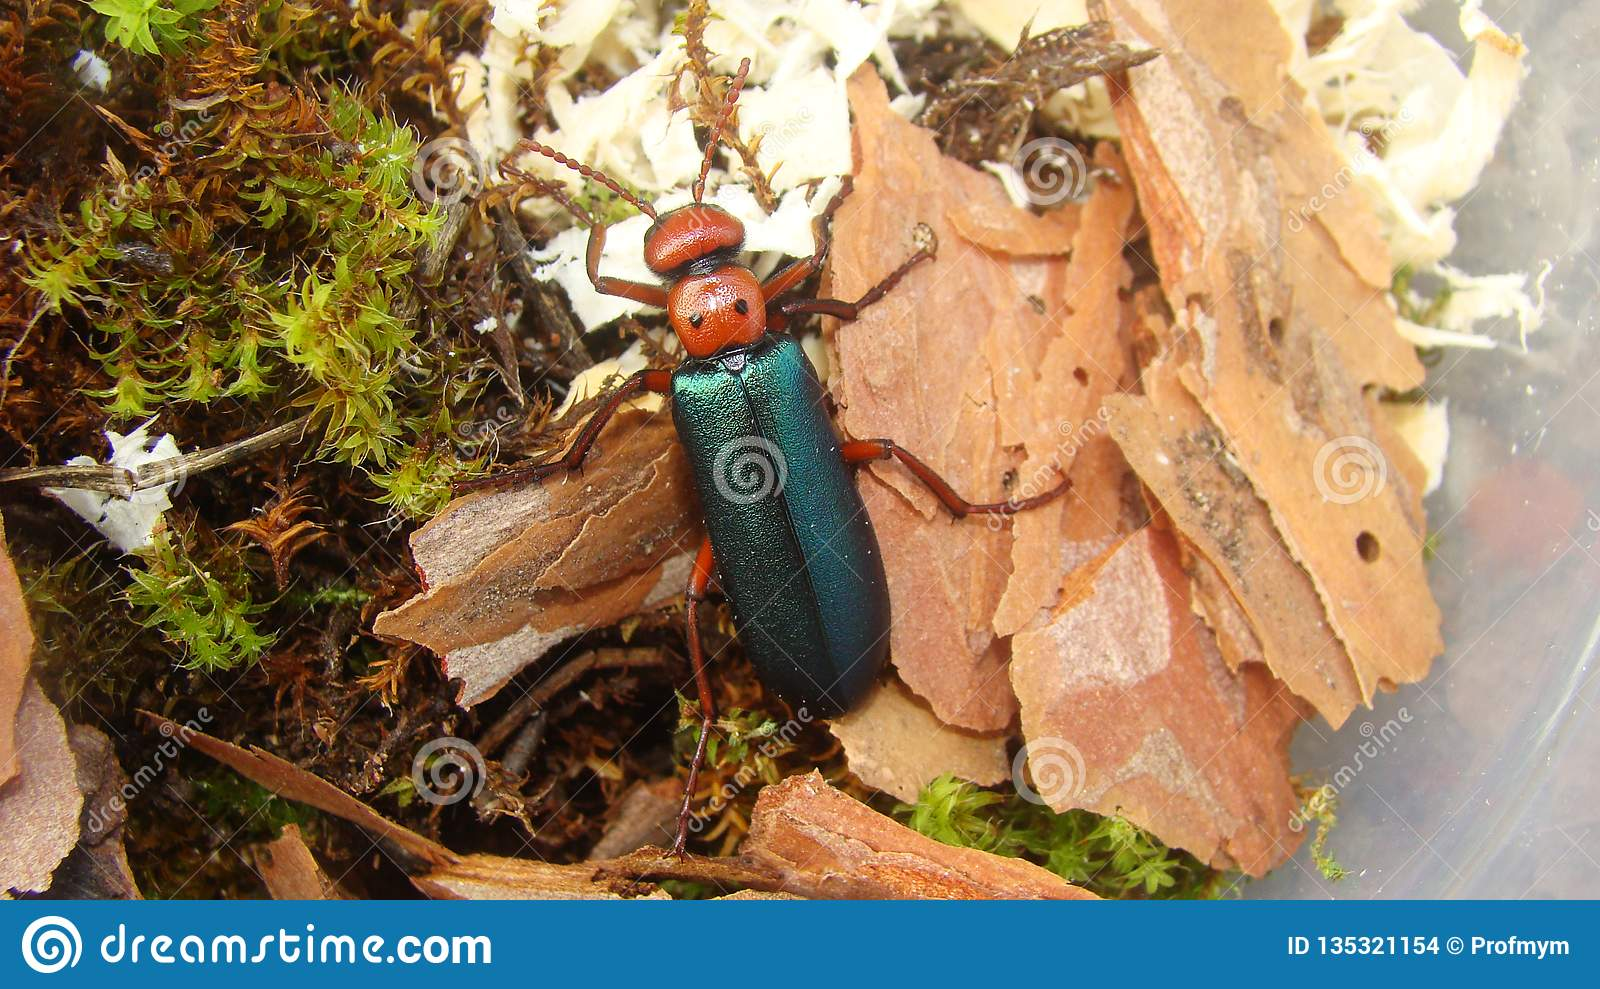 Red Beetle as pet | insect